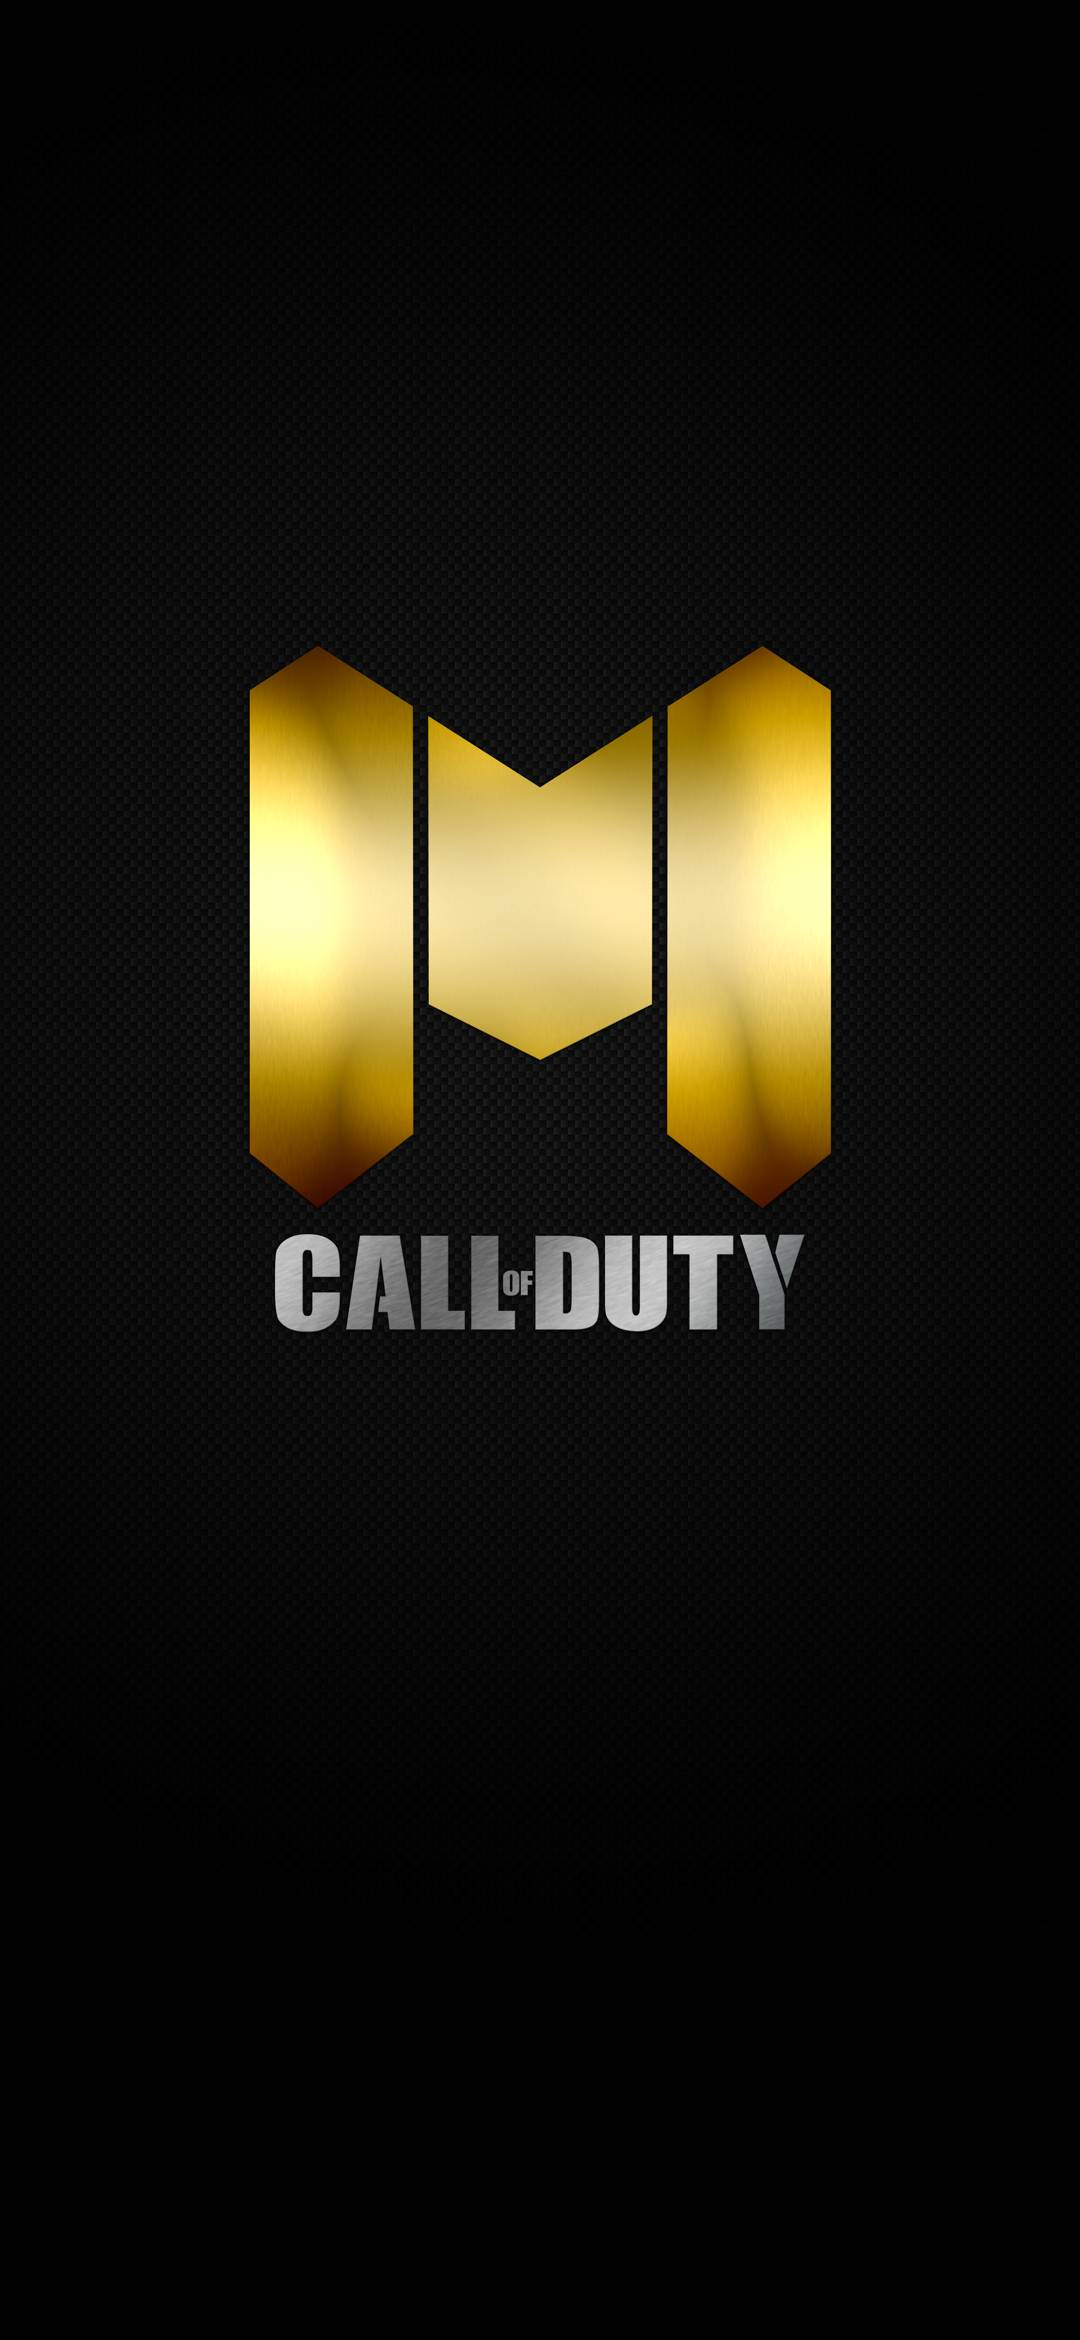 Call Of Duty Mobile Wallpaper Hd Download Call Of Duty Mobile